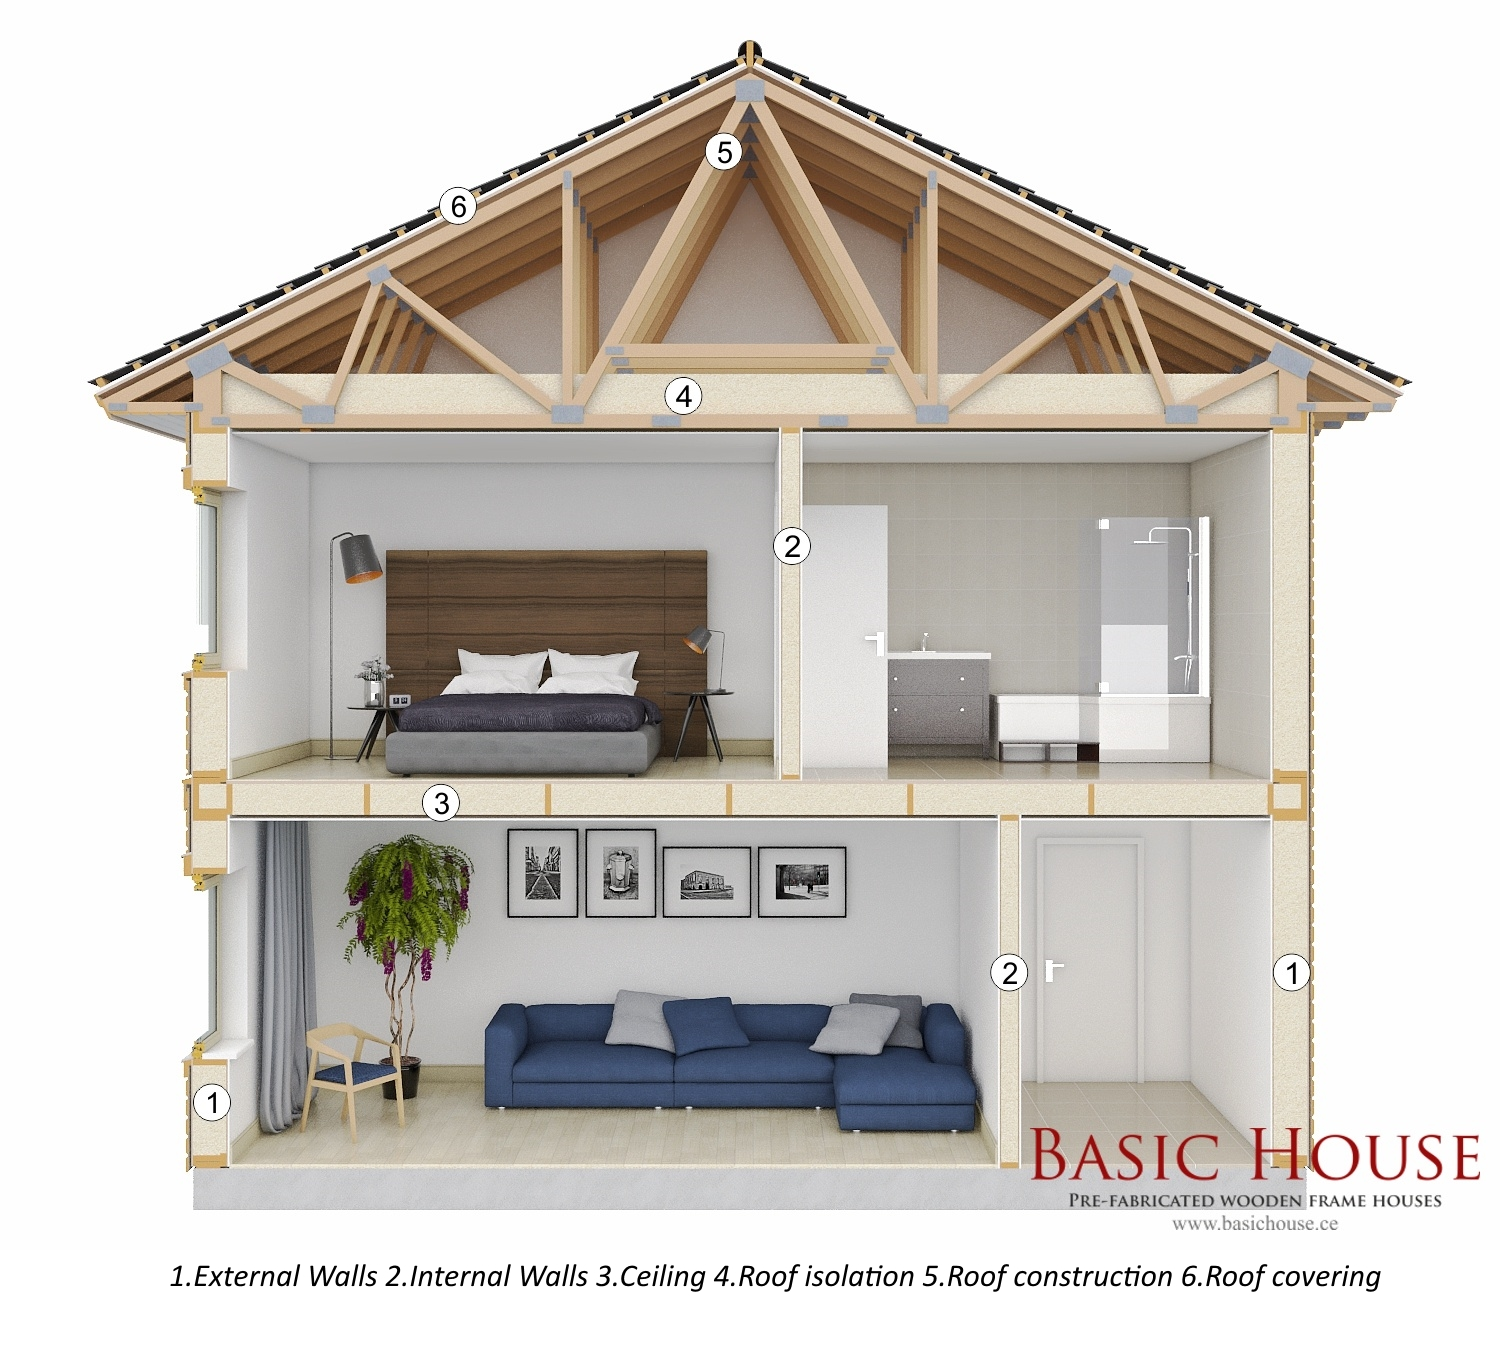 Basic House | About US